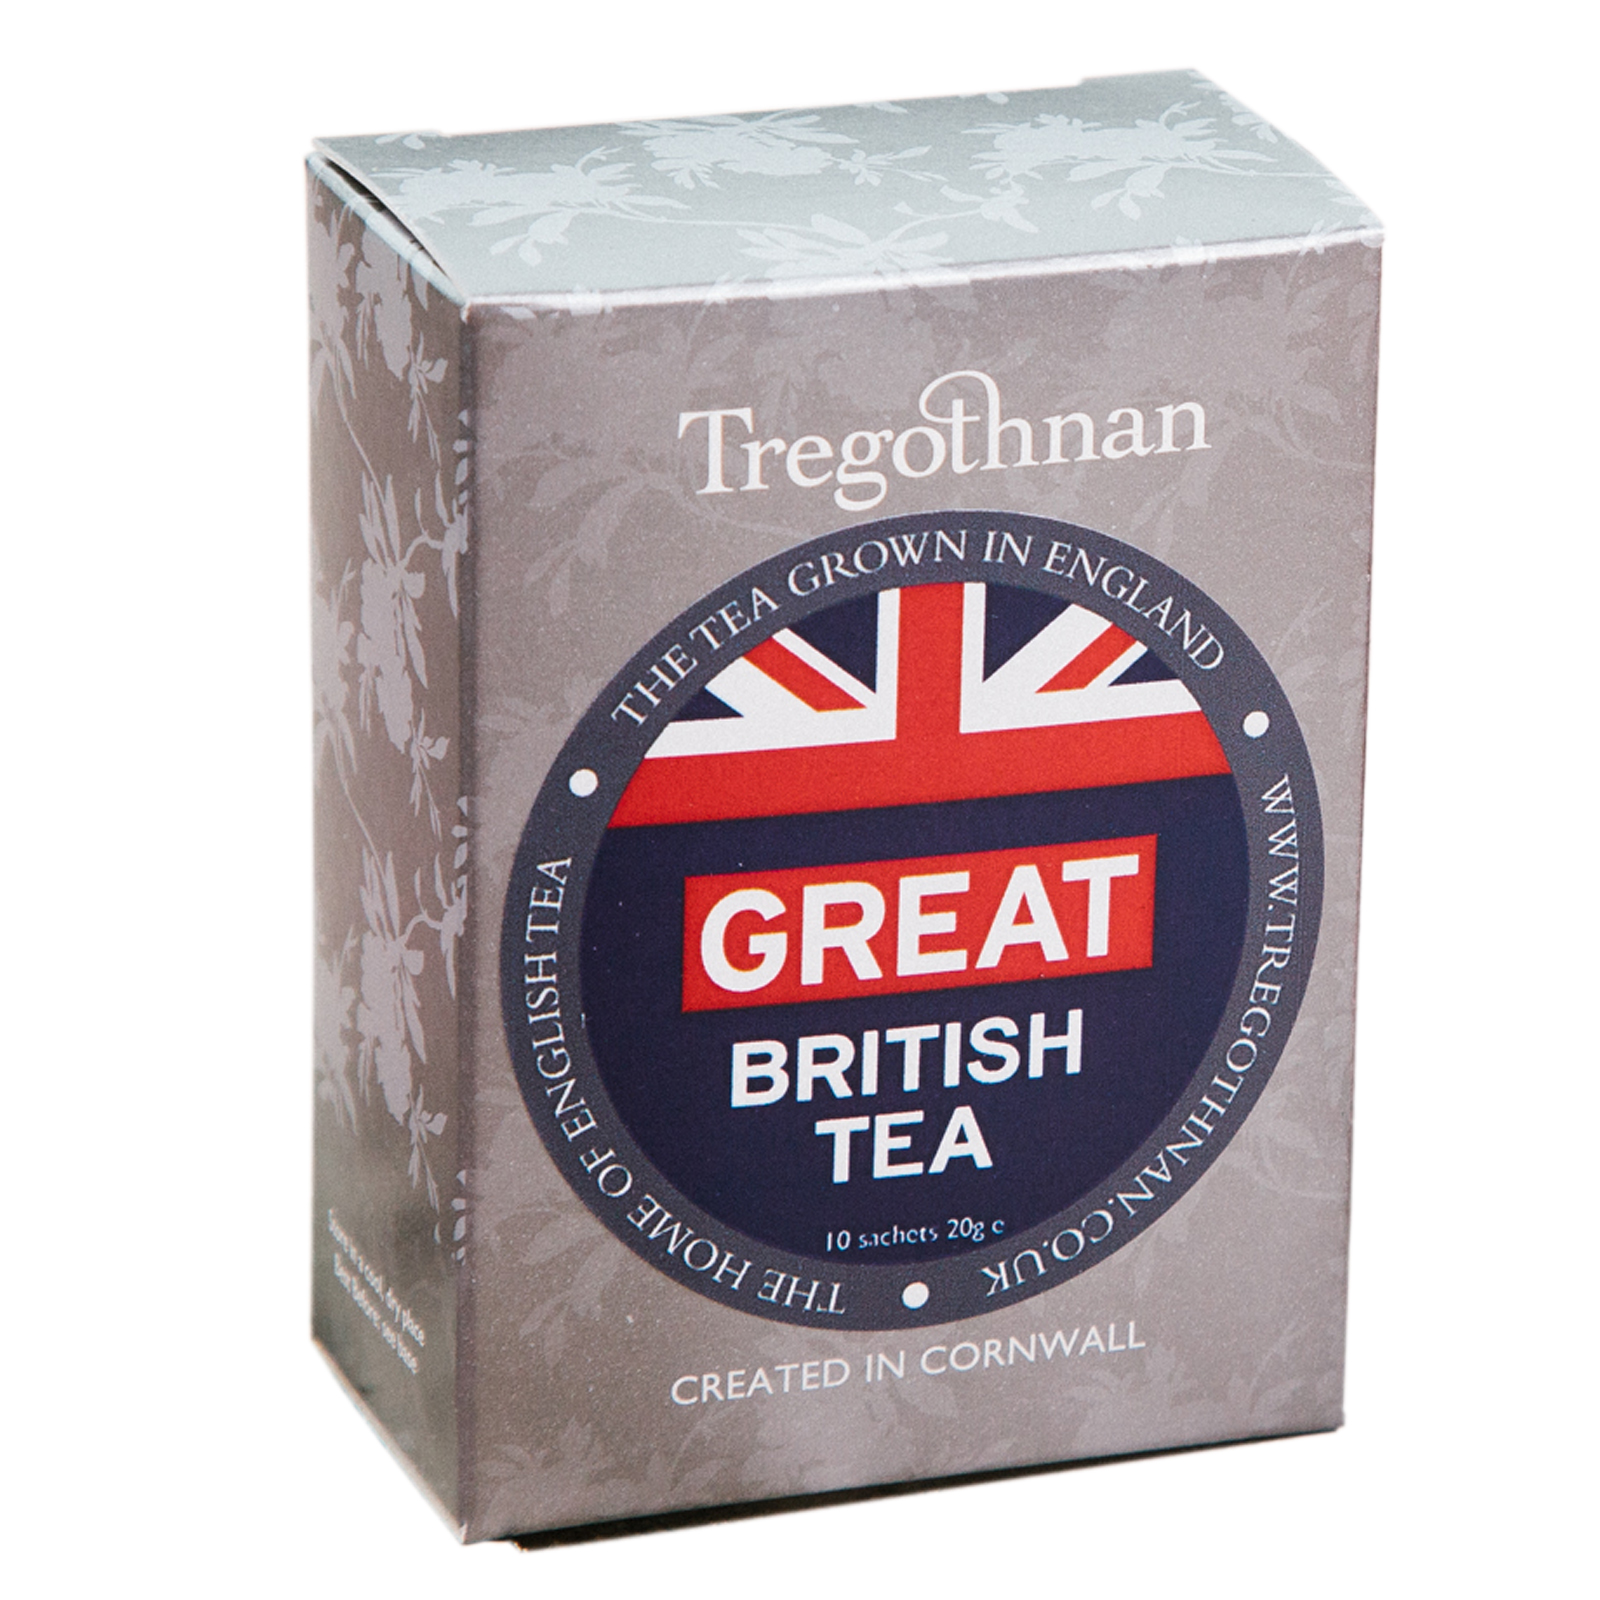 Tregothnan Great British Tea 10 Sachet Box